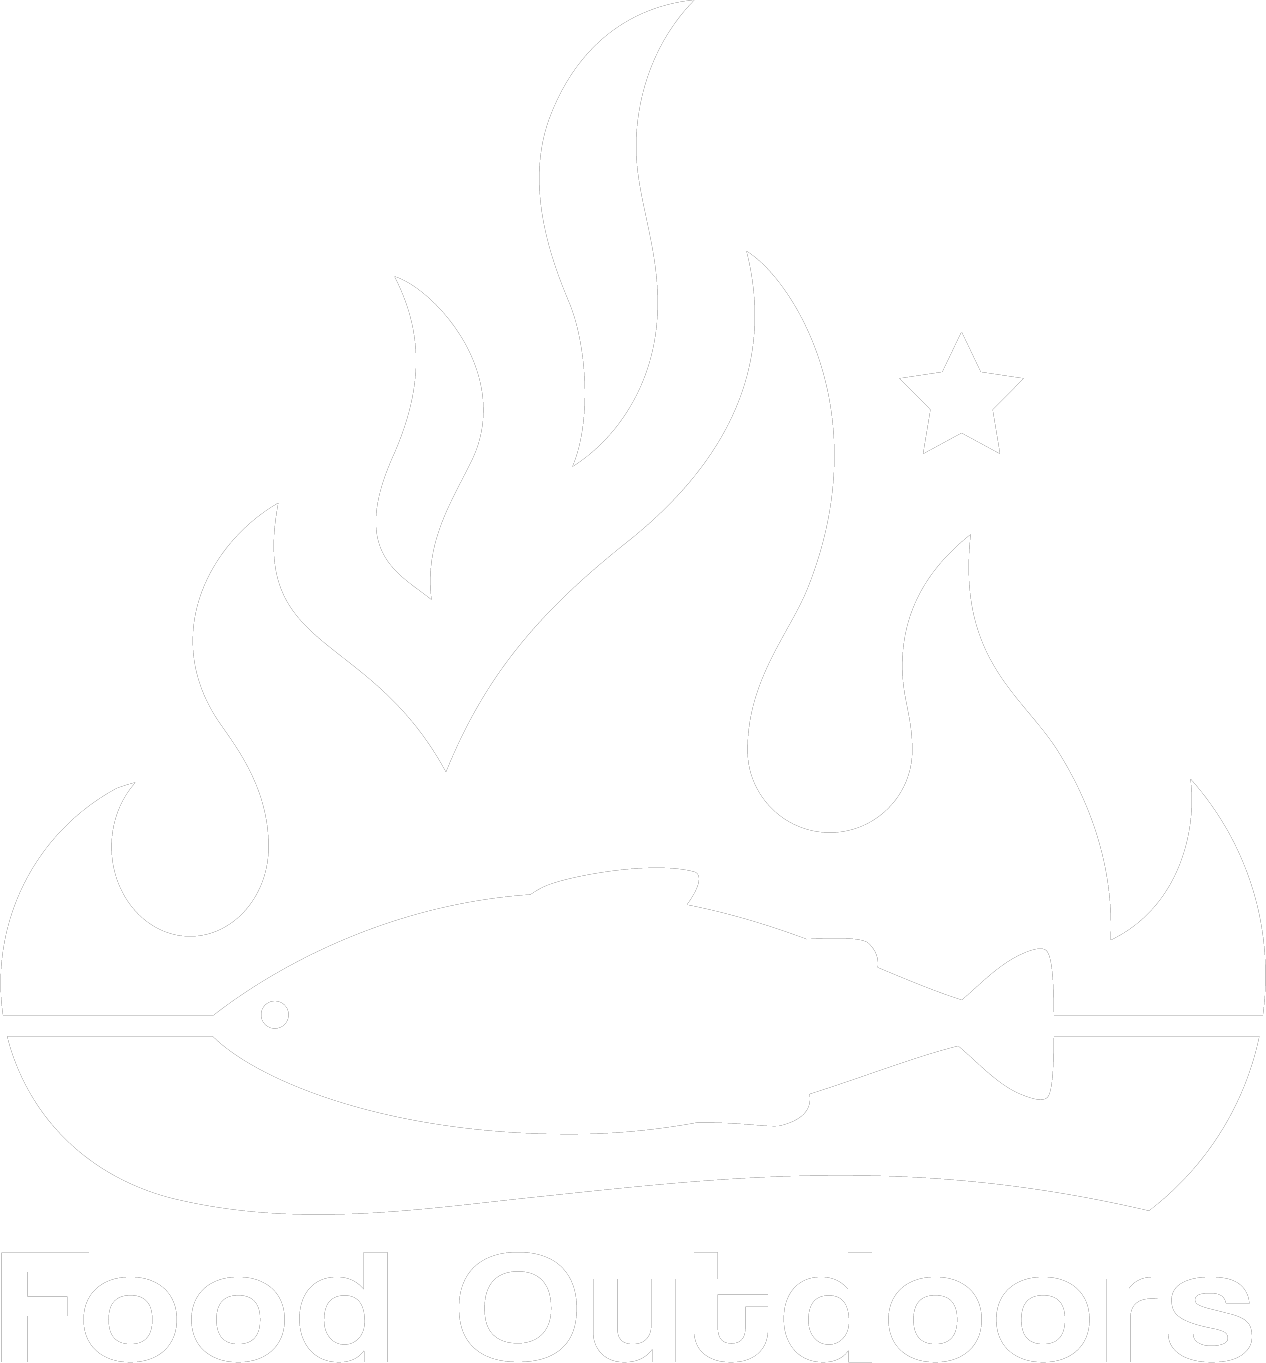 Food Outdoors